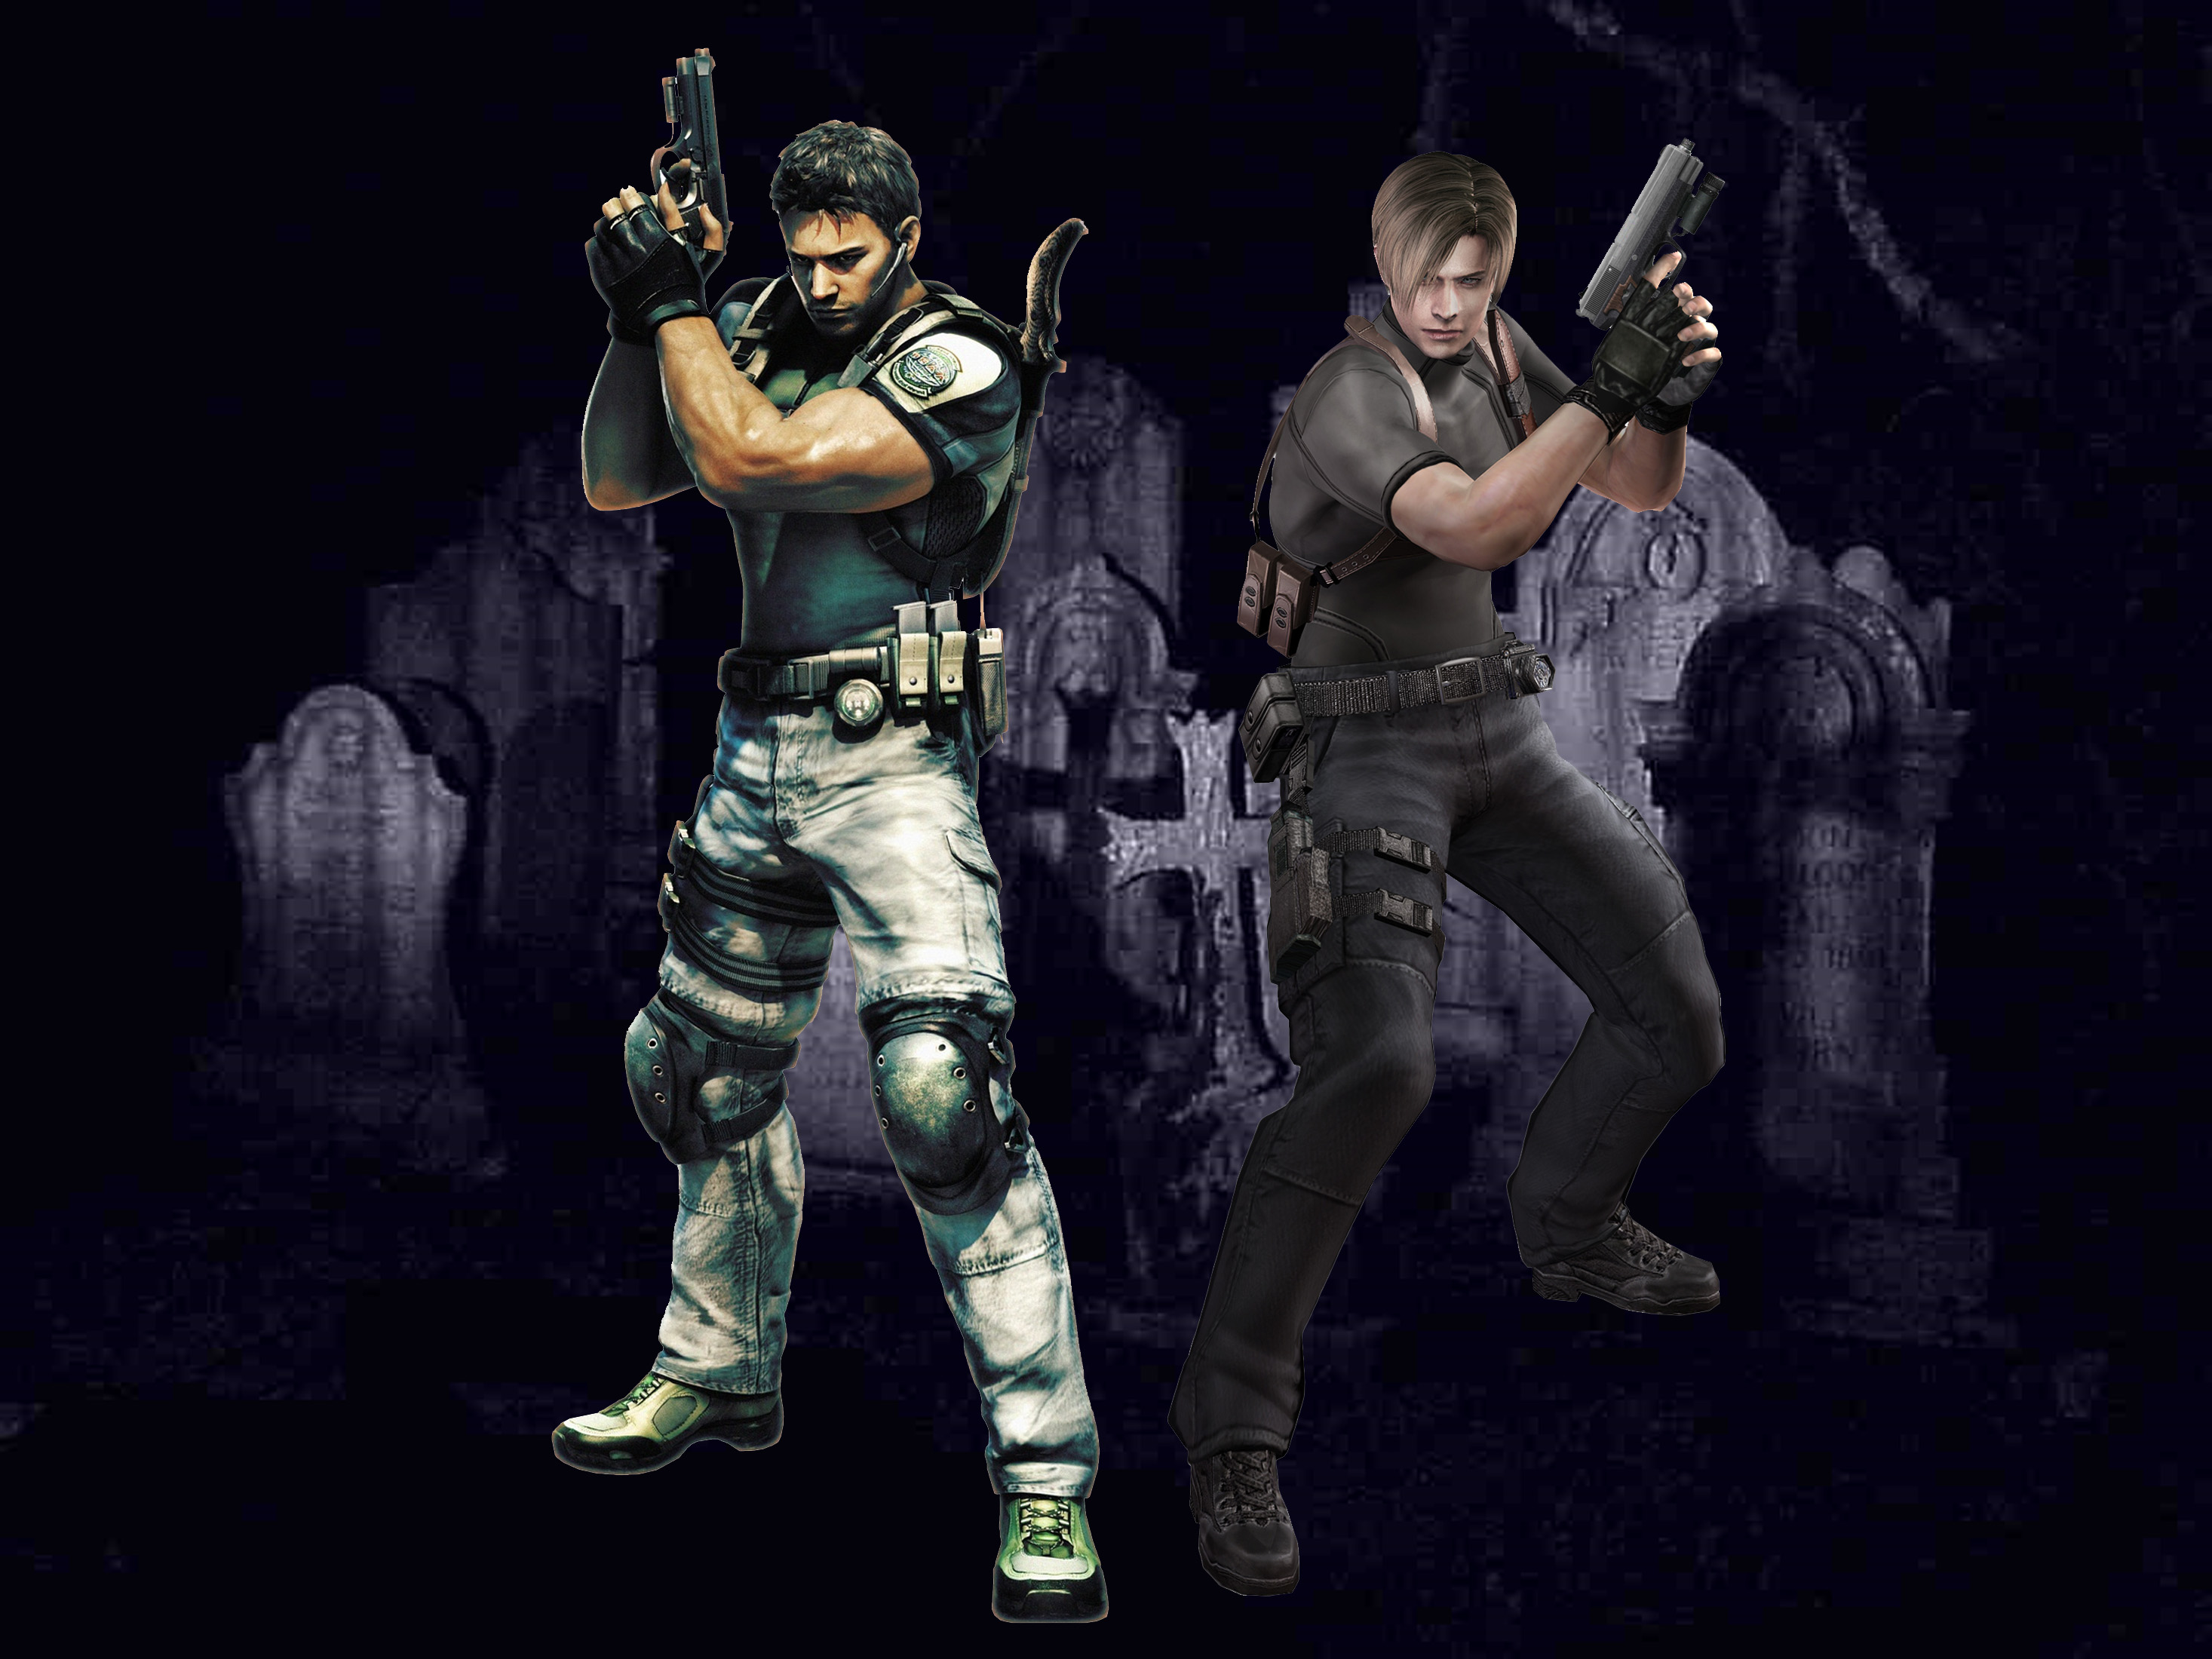 Resident Evil 6 Featuring Leon And Chris Coming Out This Year Gamers Xtreme